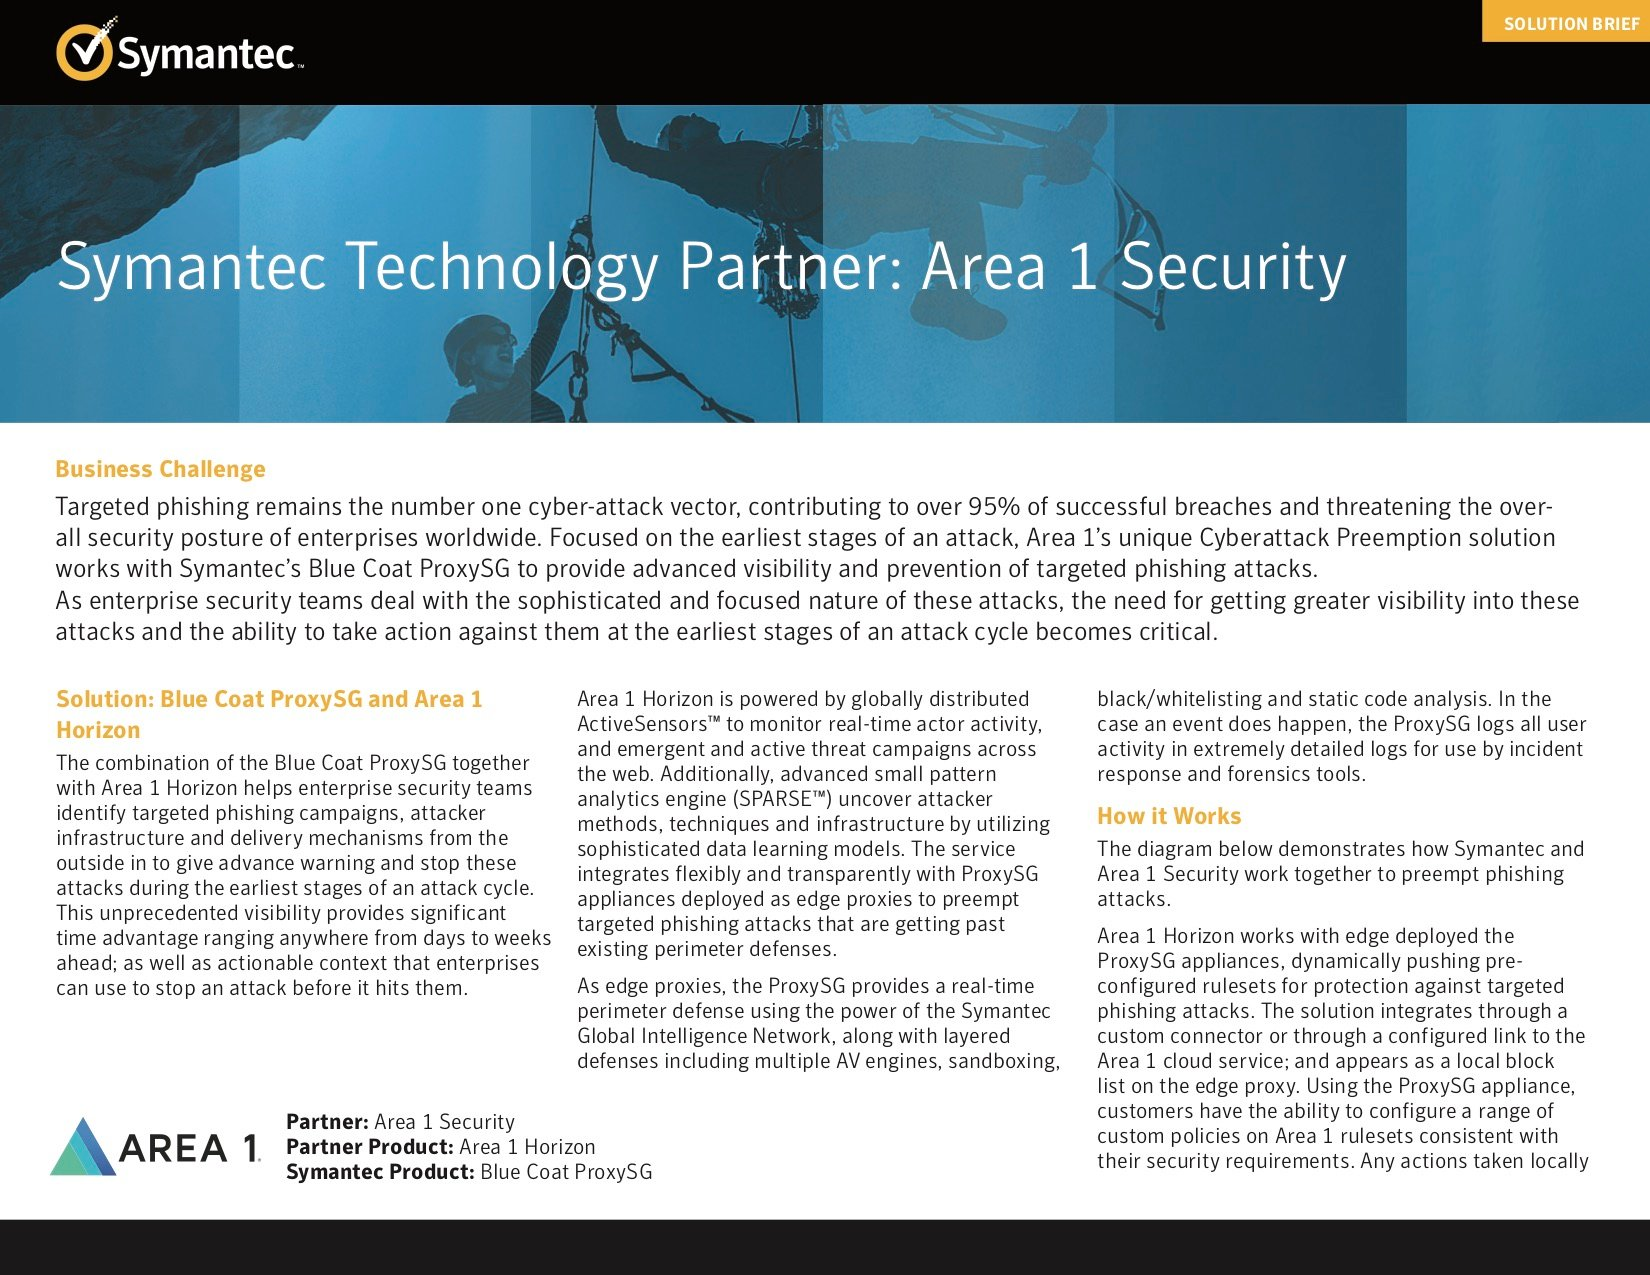 Symantec_Solution_Breif